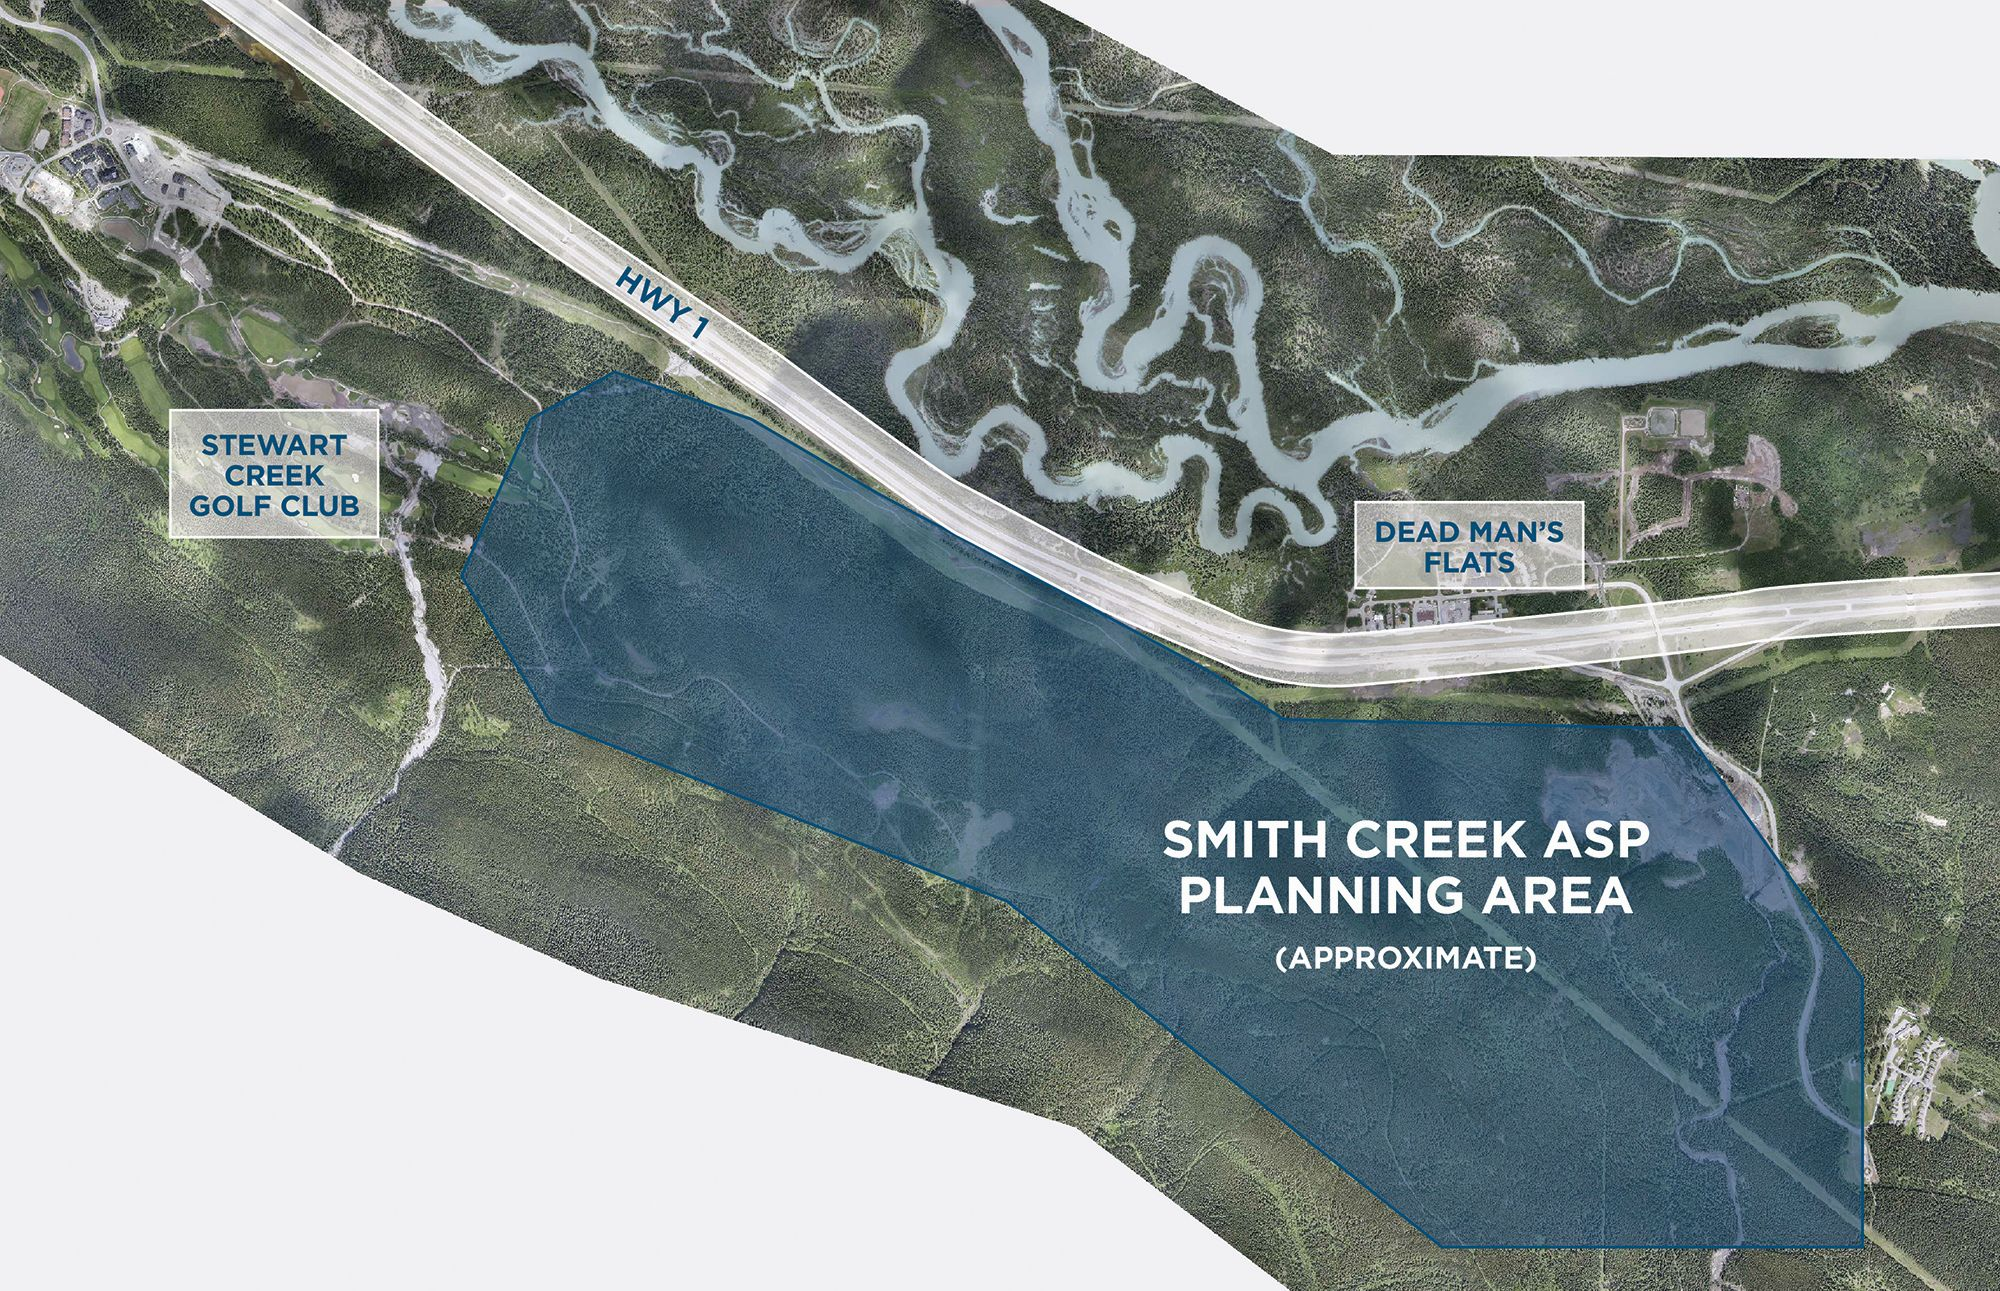 Smith Creek ASP Planning Area - Public consultation between Canmore, Three Sisters - Now on PlaceSpeak